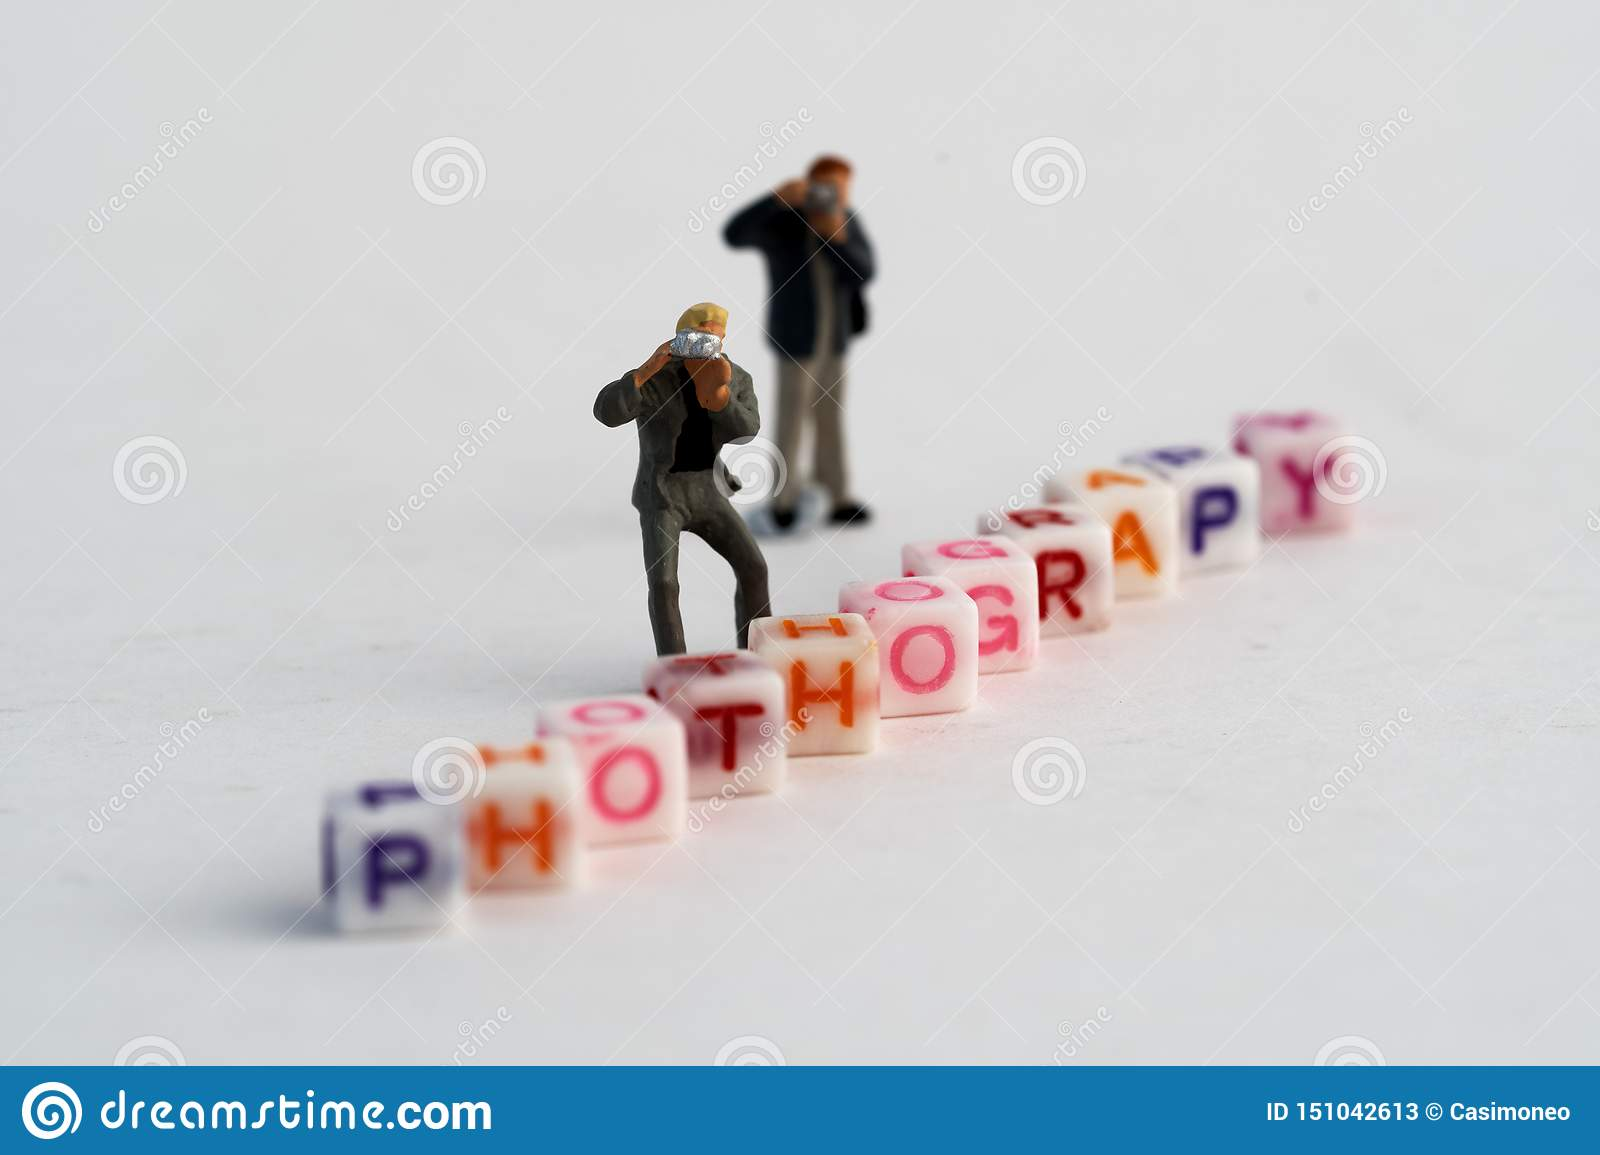 Miniature Photographers taking pictures behind a Group Of Letters forming Word Spelling